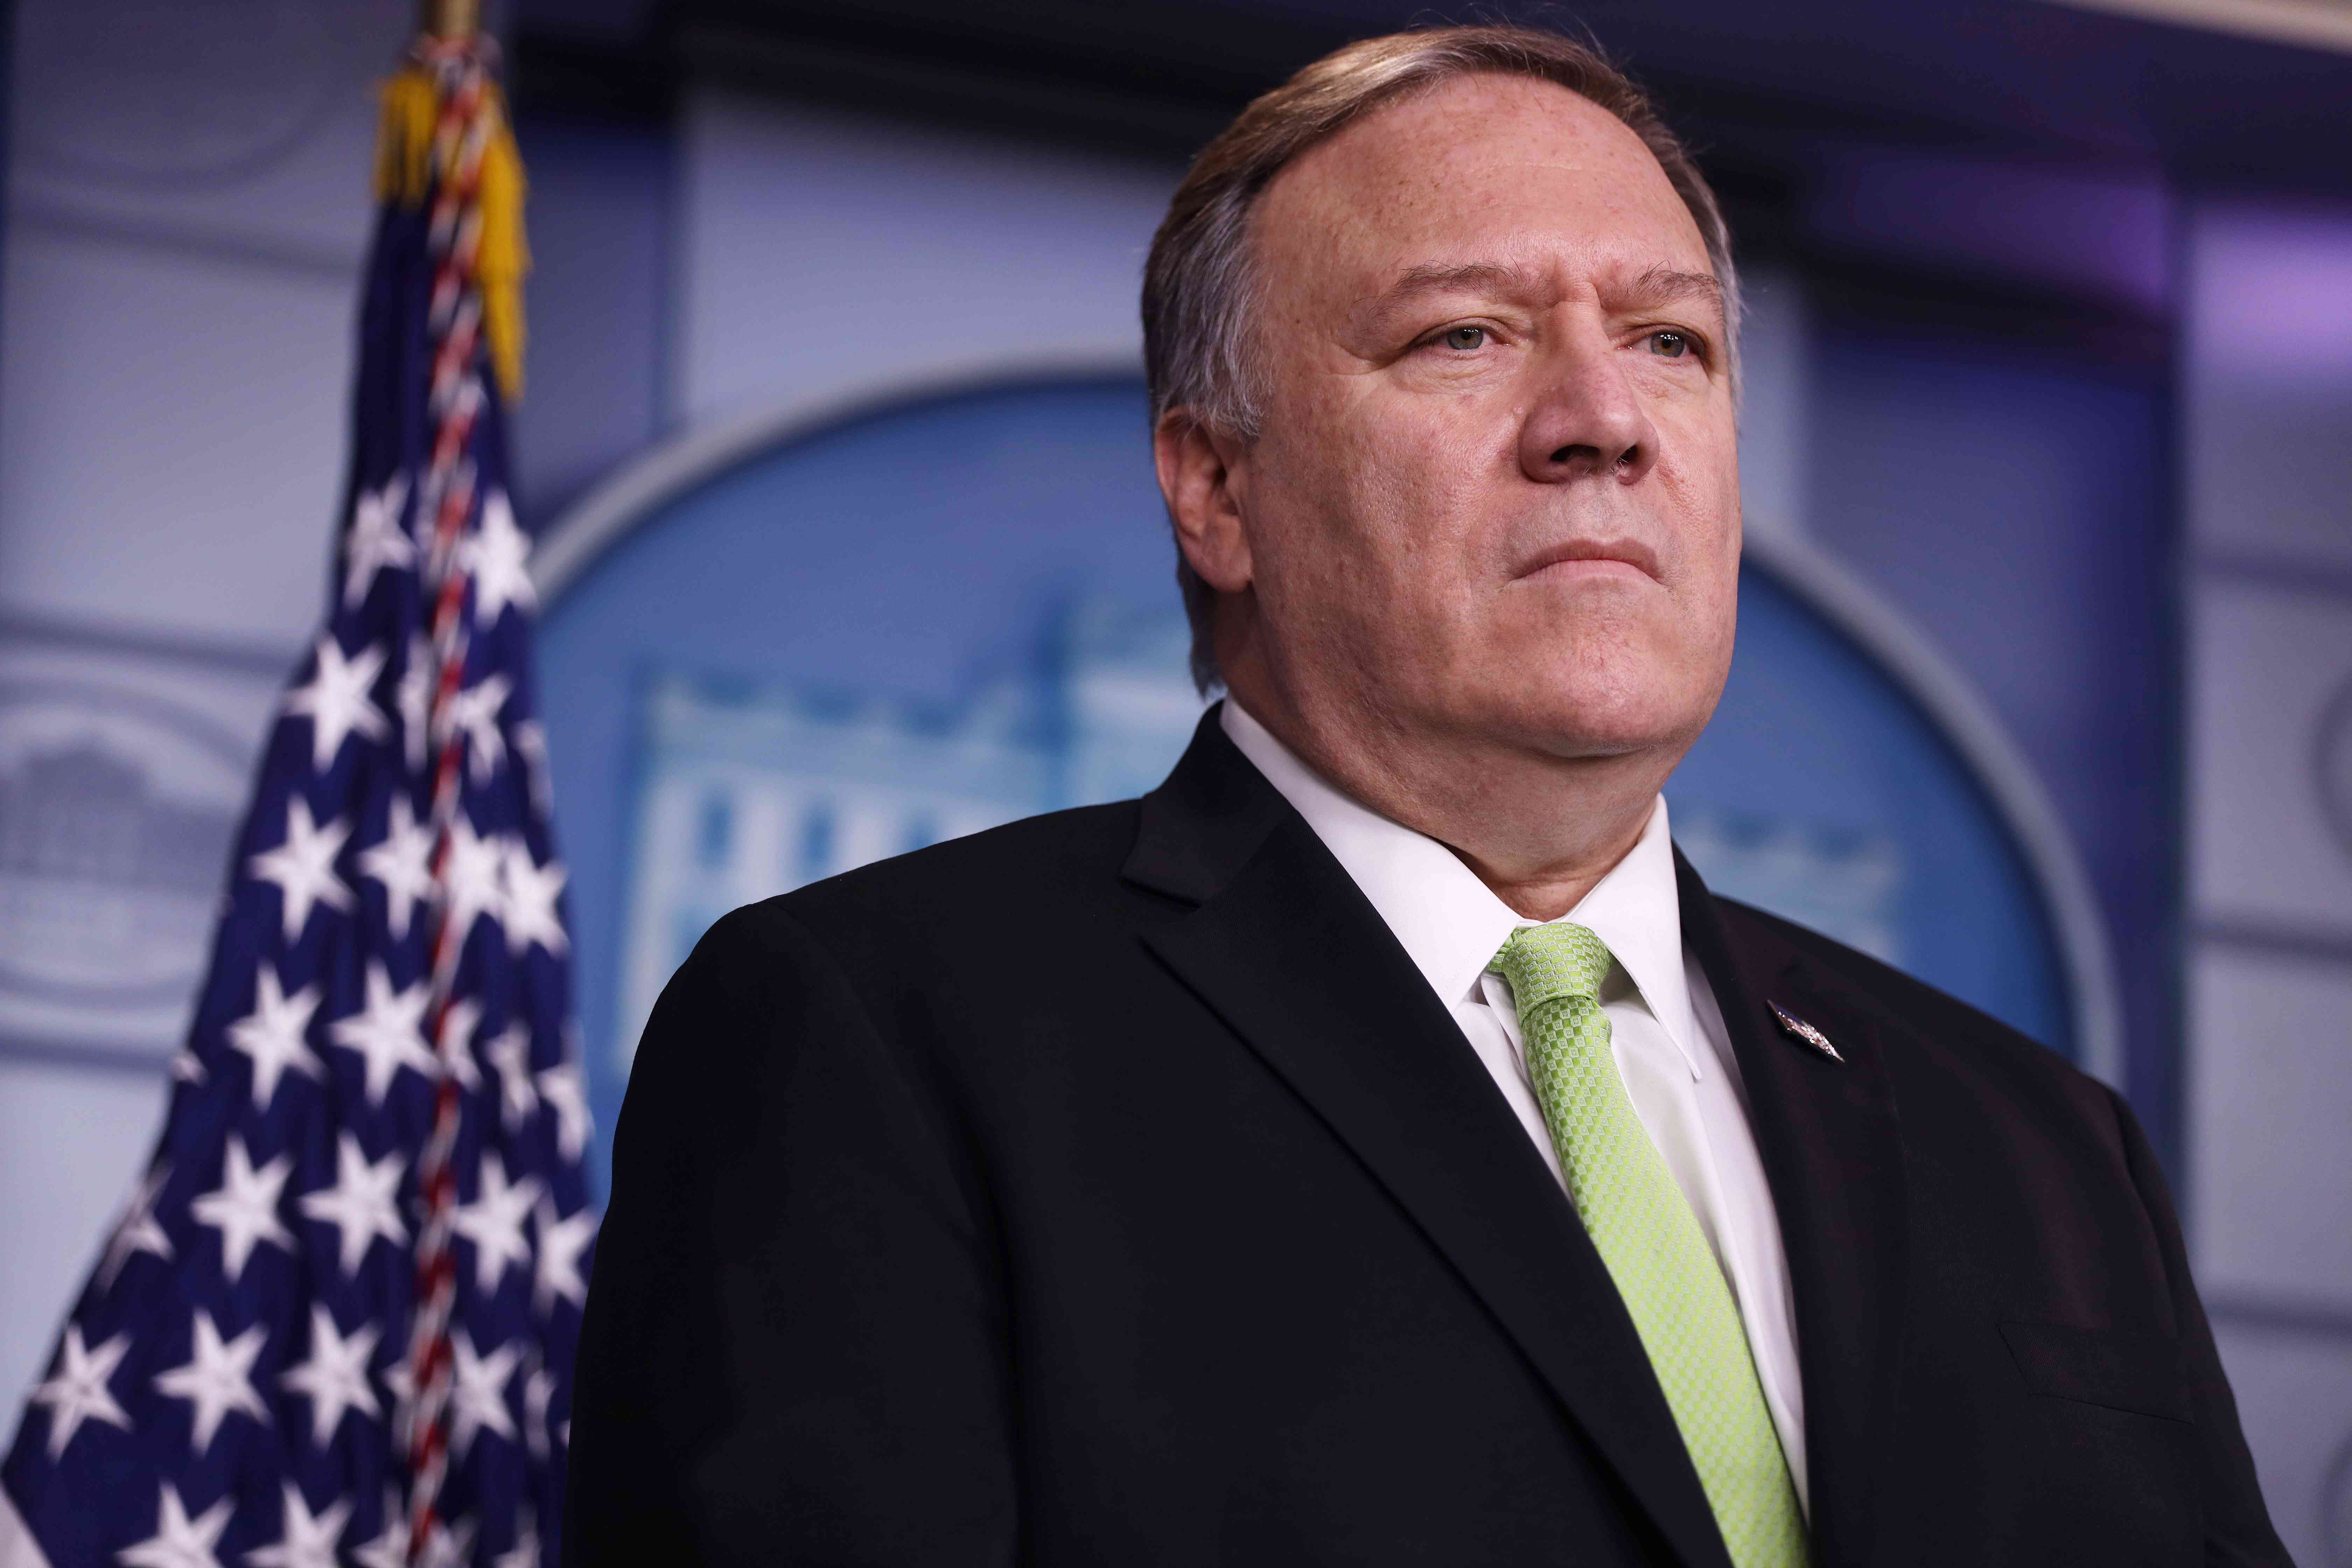 U.S. Secretary of State Mike Pompeo in the White House on January 10, 2020.